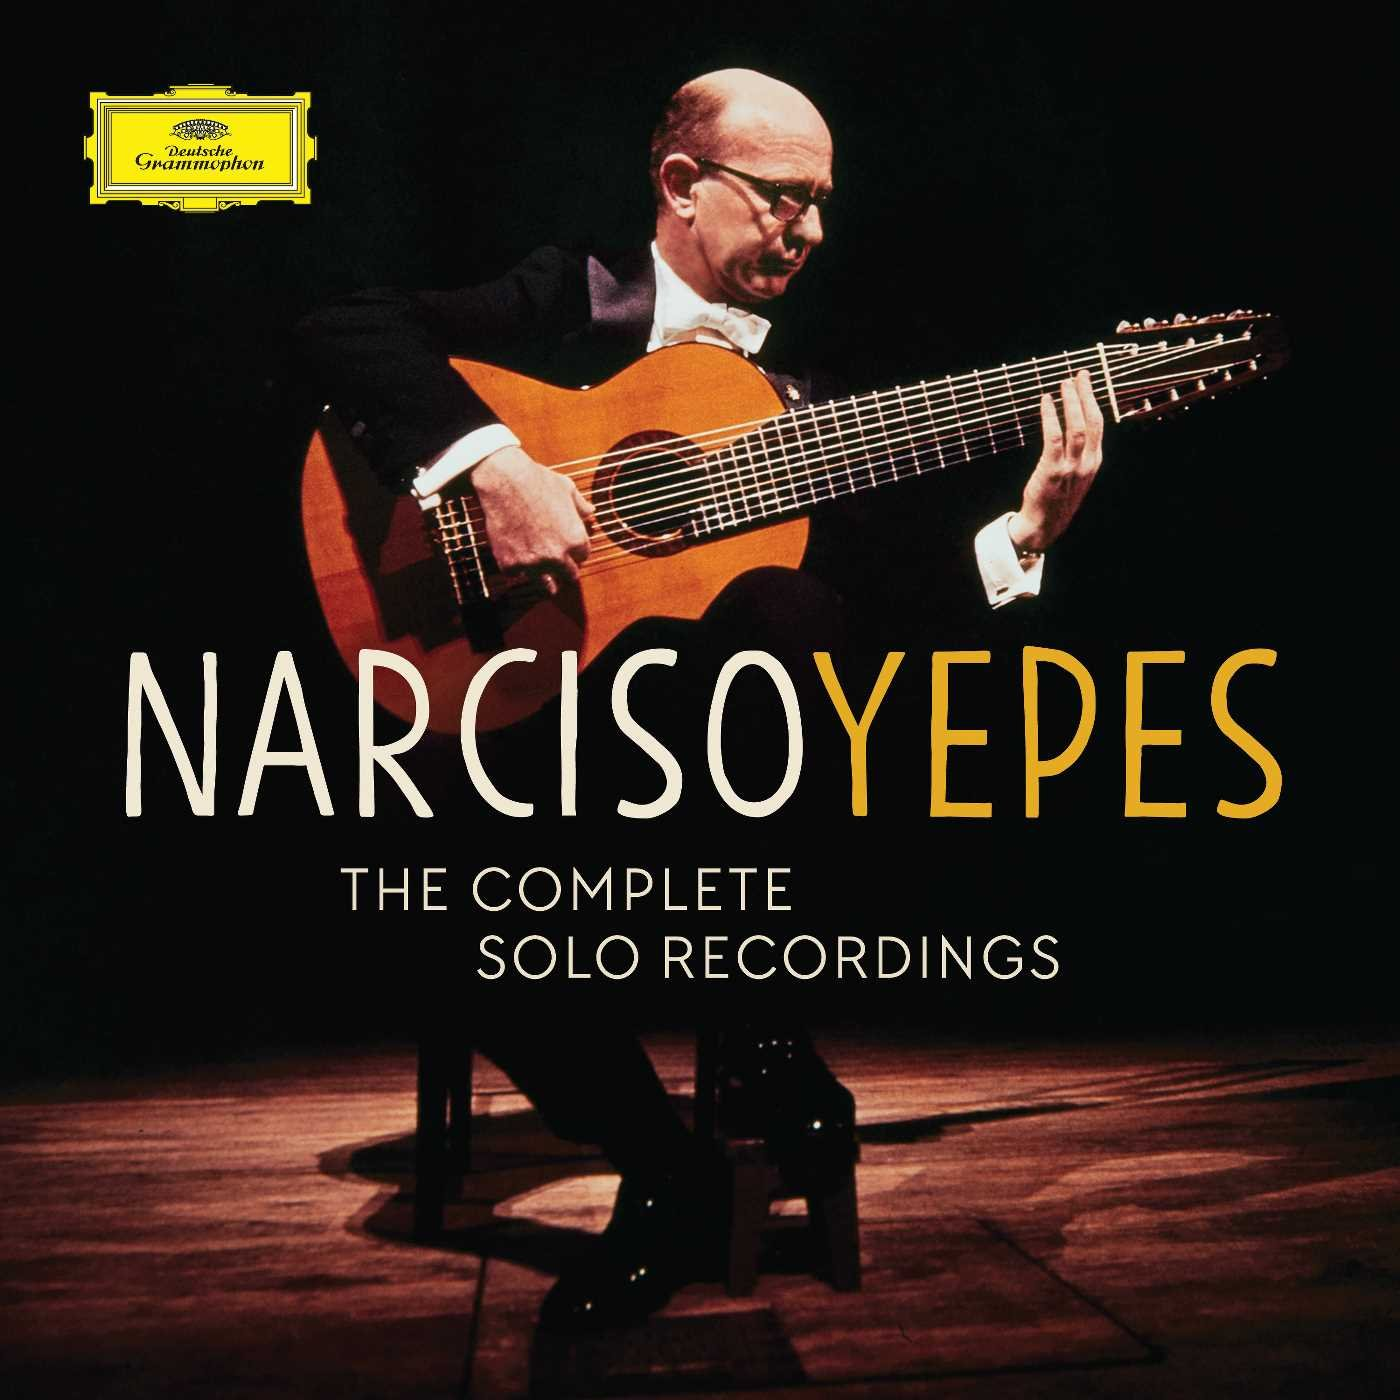 Yepes - Complete Solo Recordings [20 CD][Box Set] by Deutsche Grammophon